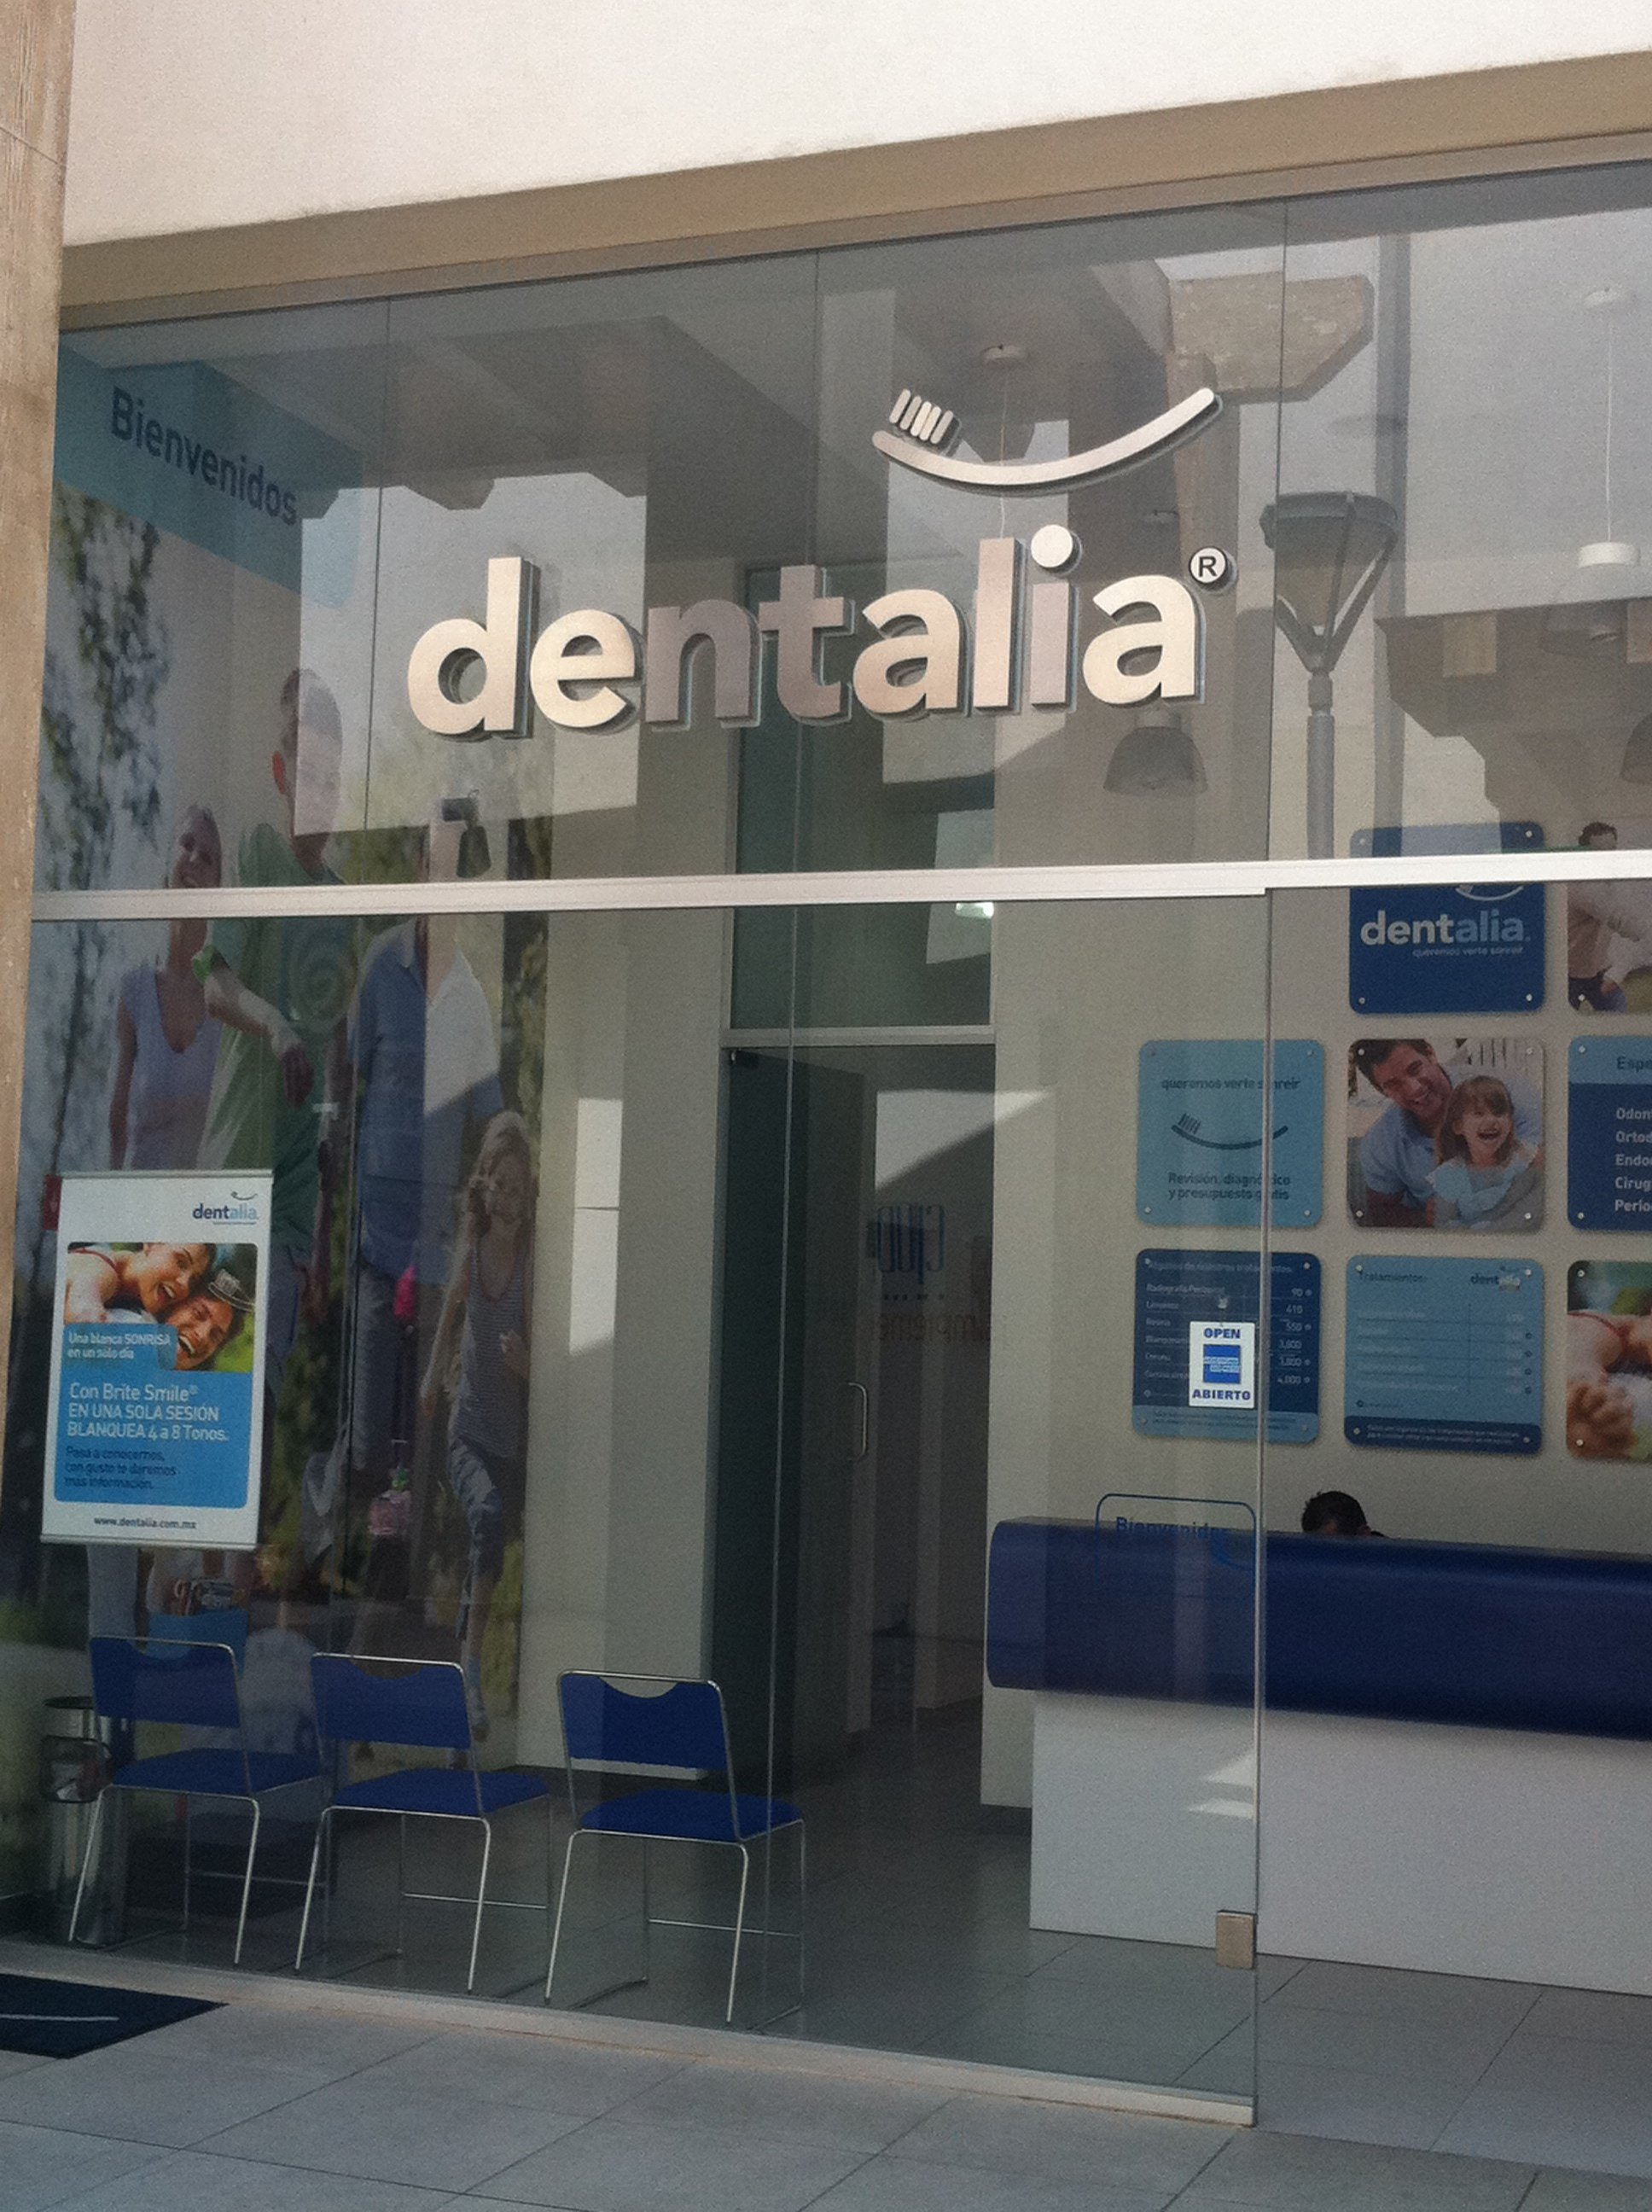 Dentalia Mexico City